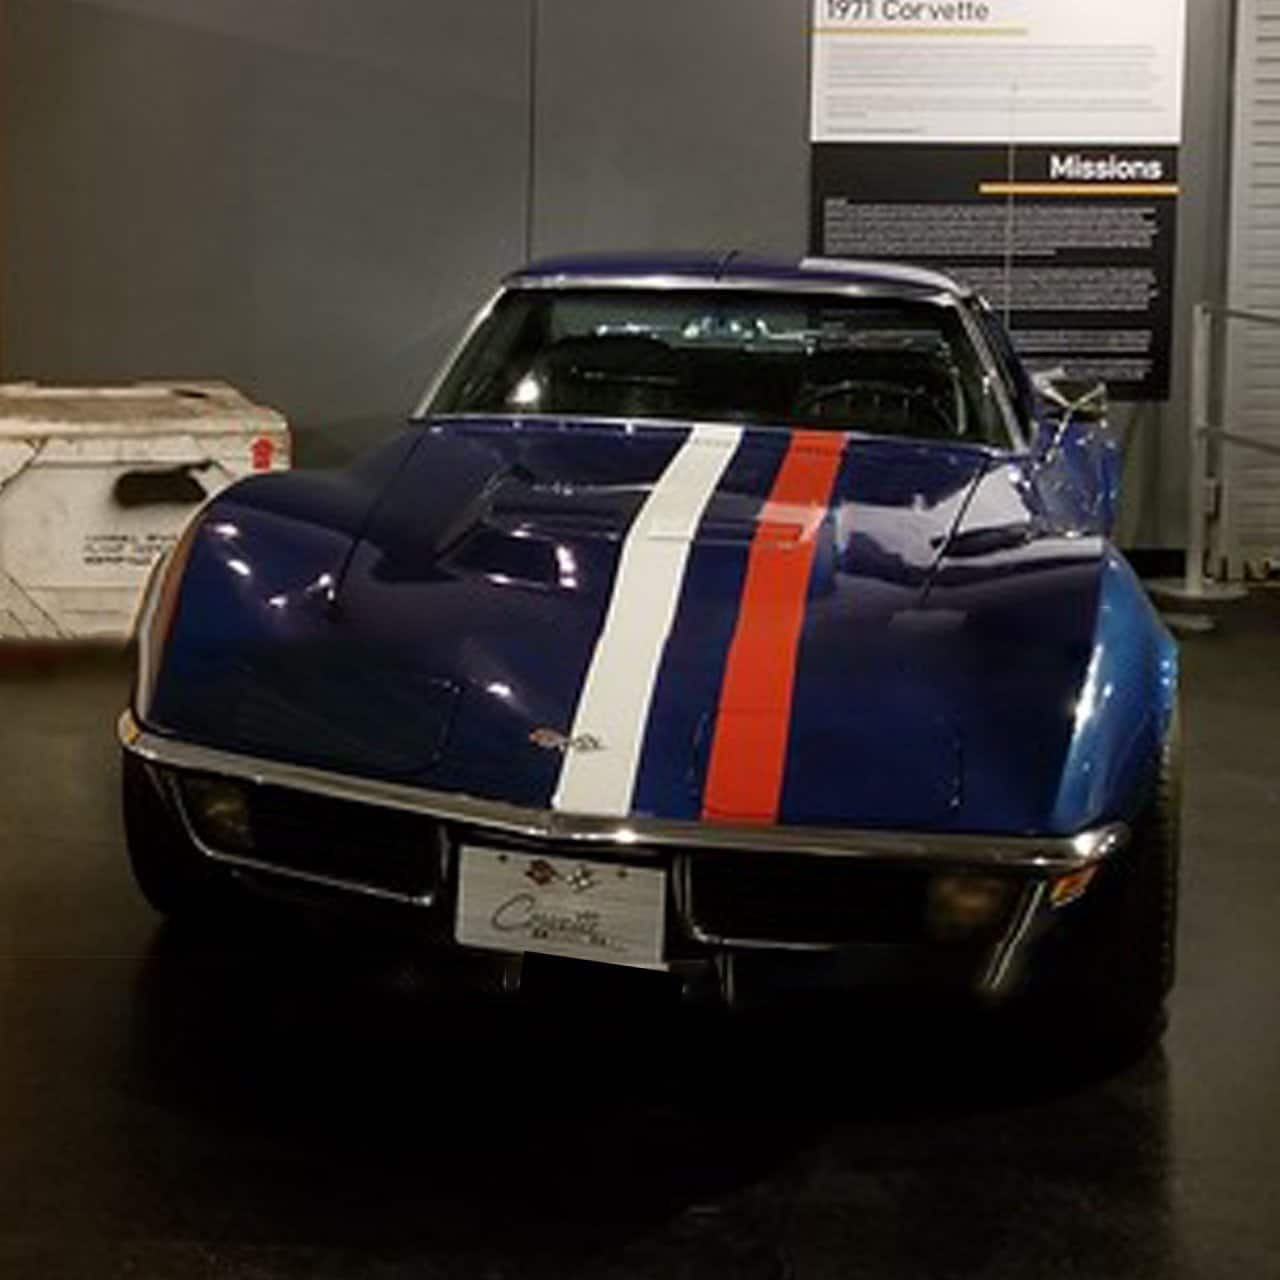 Our Featured Corvette was Dave Scott's Apollo 15 Corvette, as recently displayed at the National Corvette Museum.